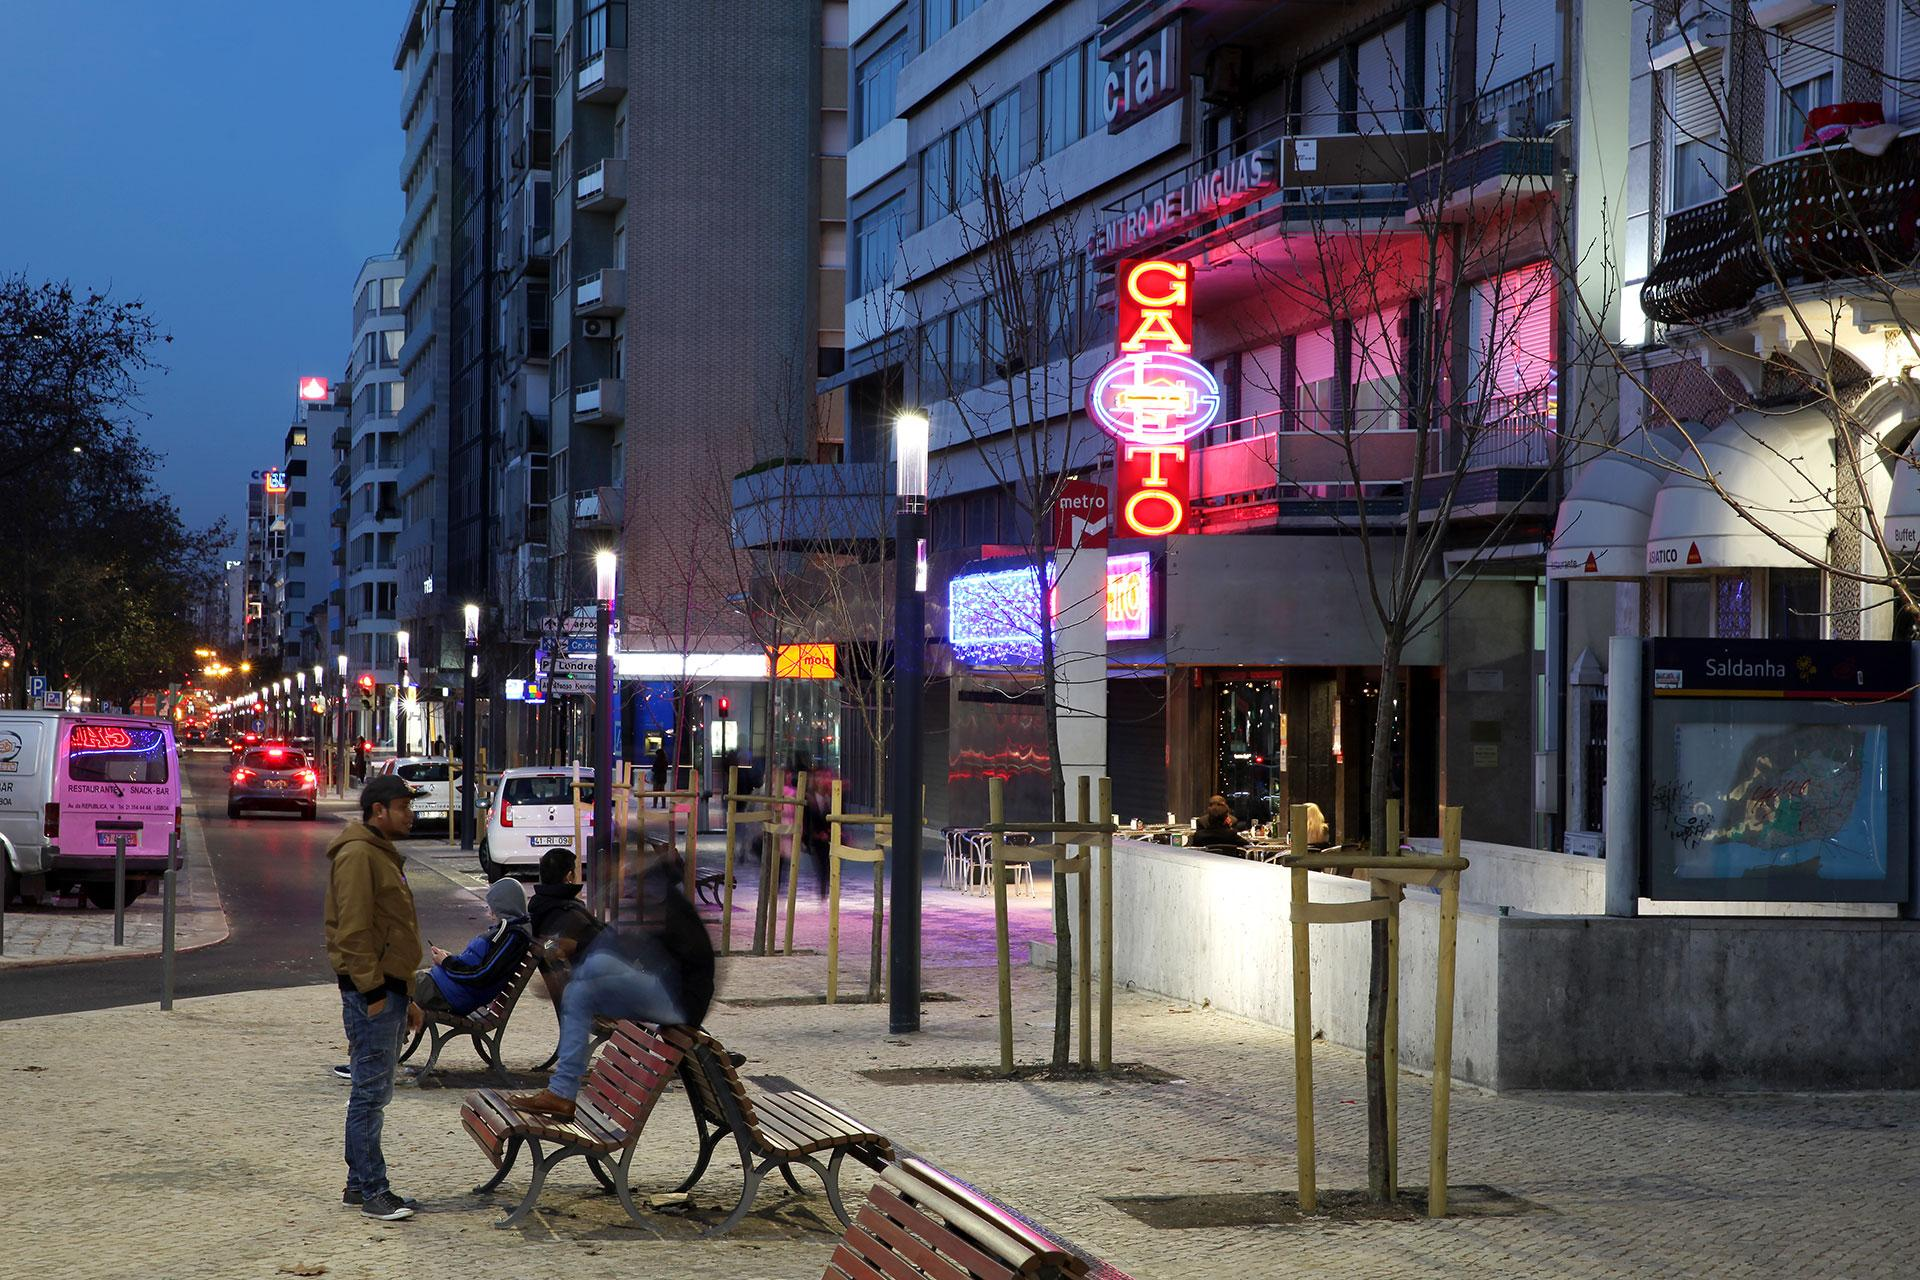 Shuffle columns light the pedestrian areas of Lisbon central axis, providing a relaxed vibe